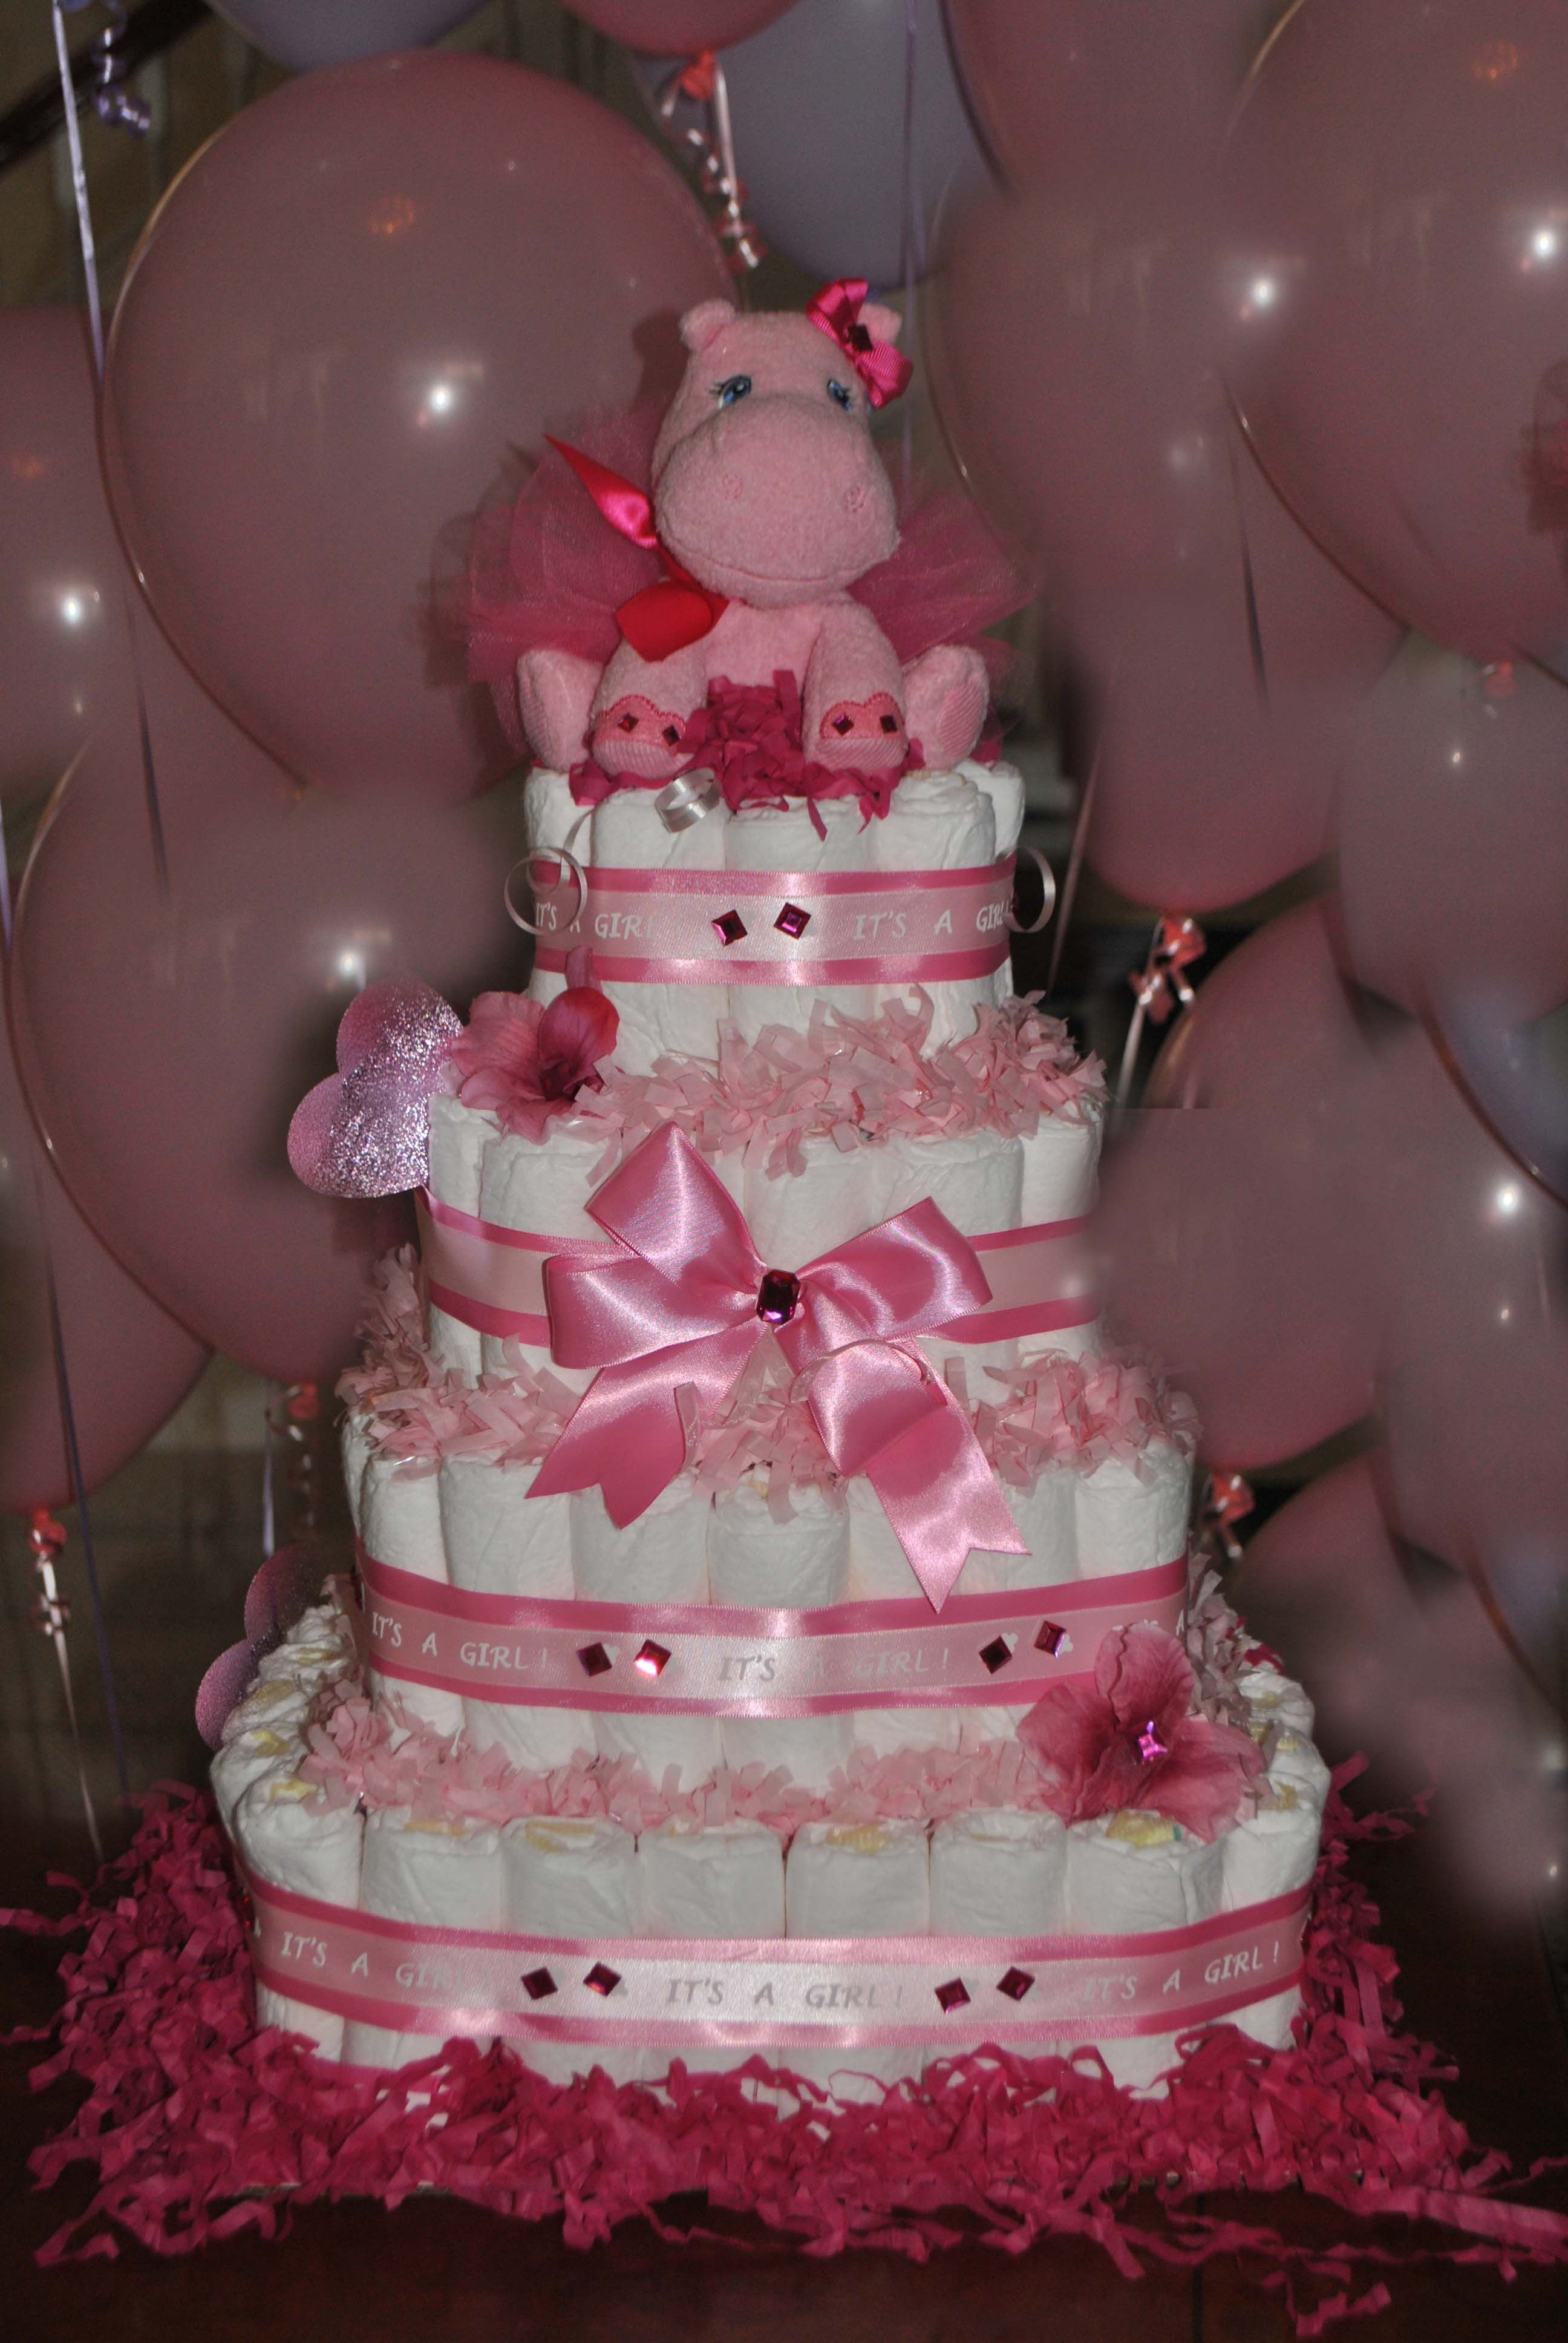 This Is A Very Practical Gift Its A Diaper Cake